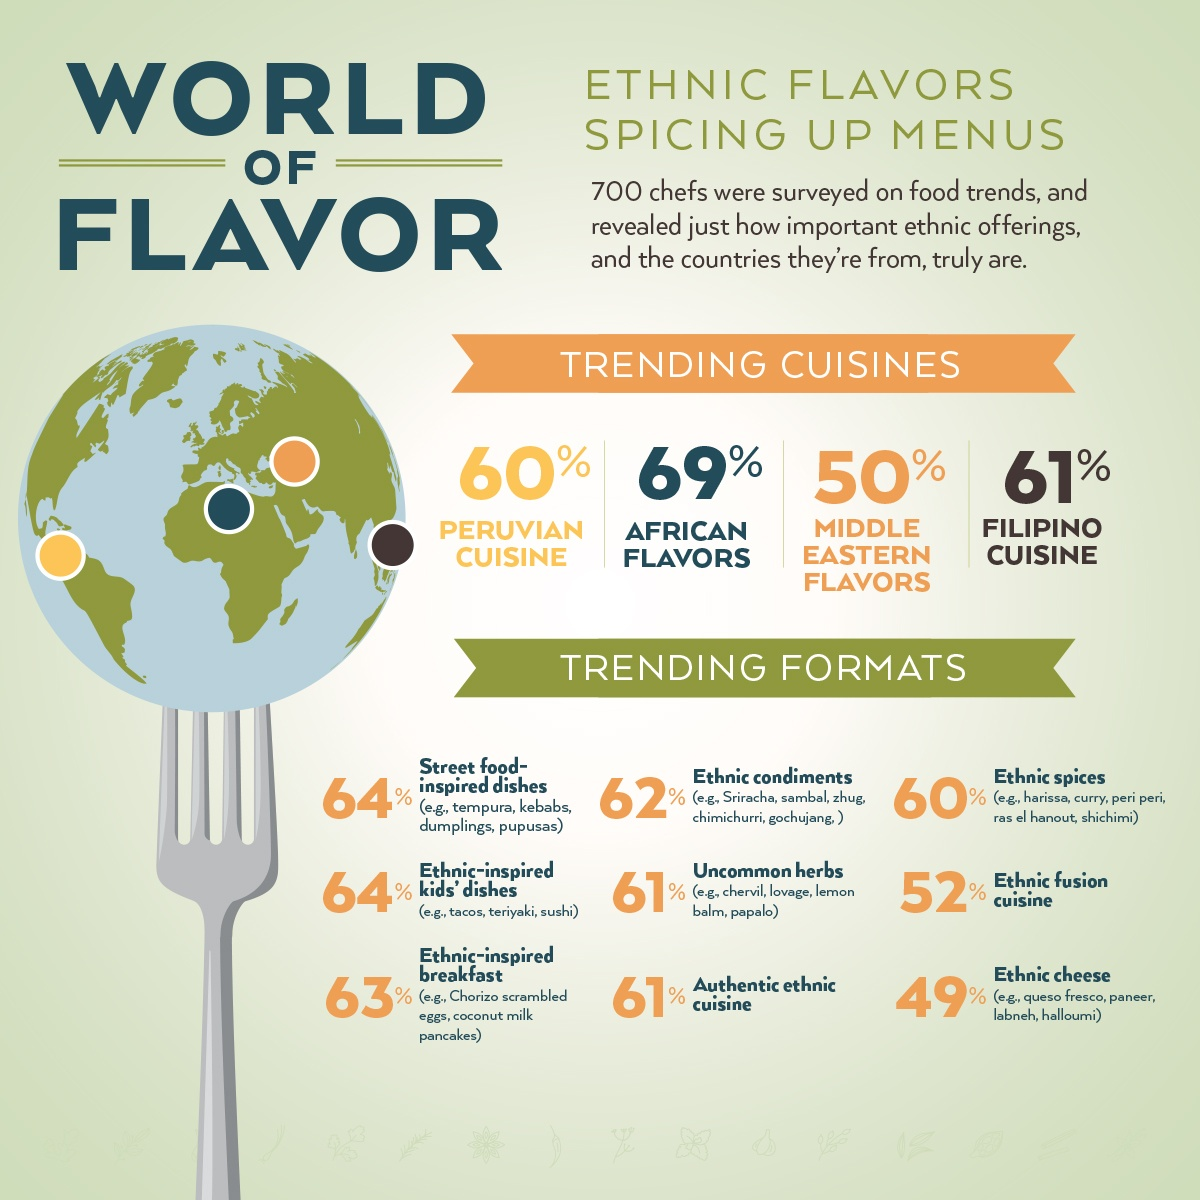 Ethnic Flavors Spicing Up Menus Infographic